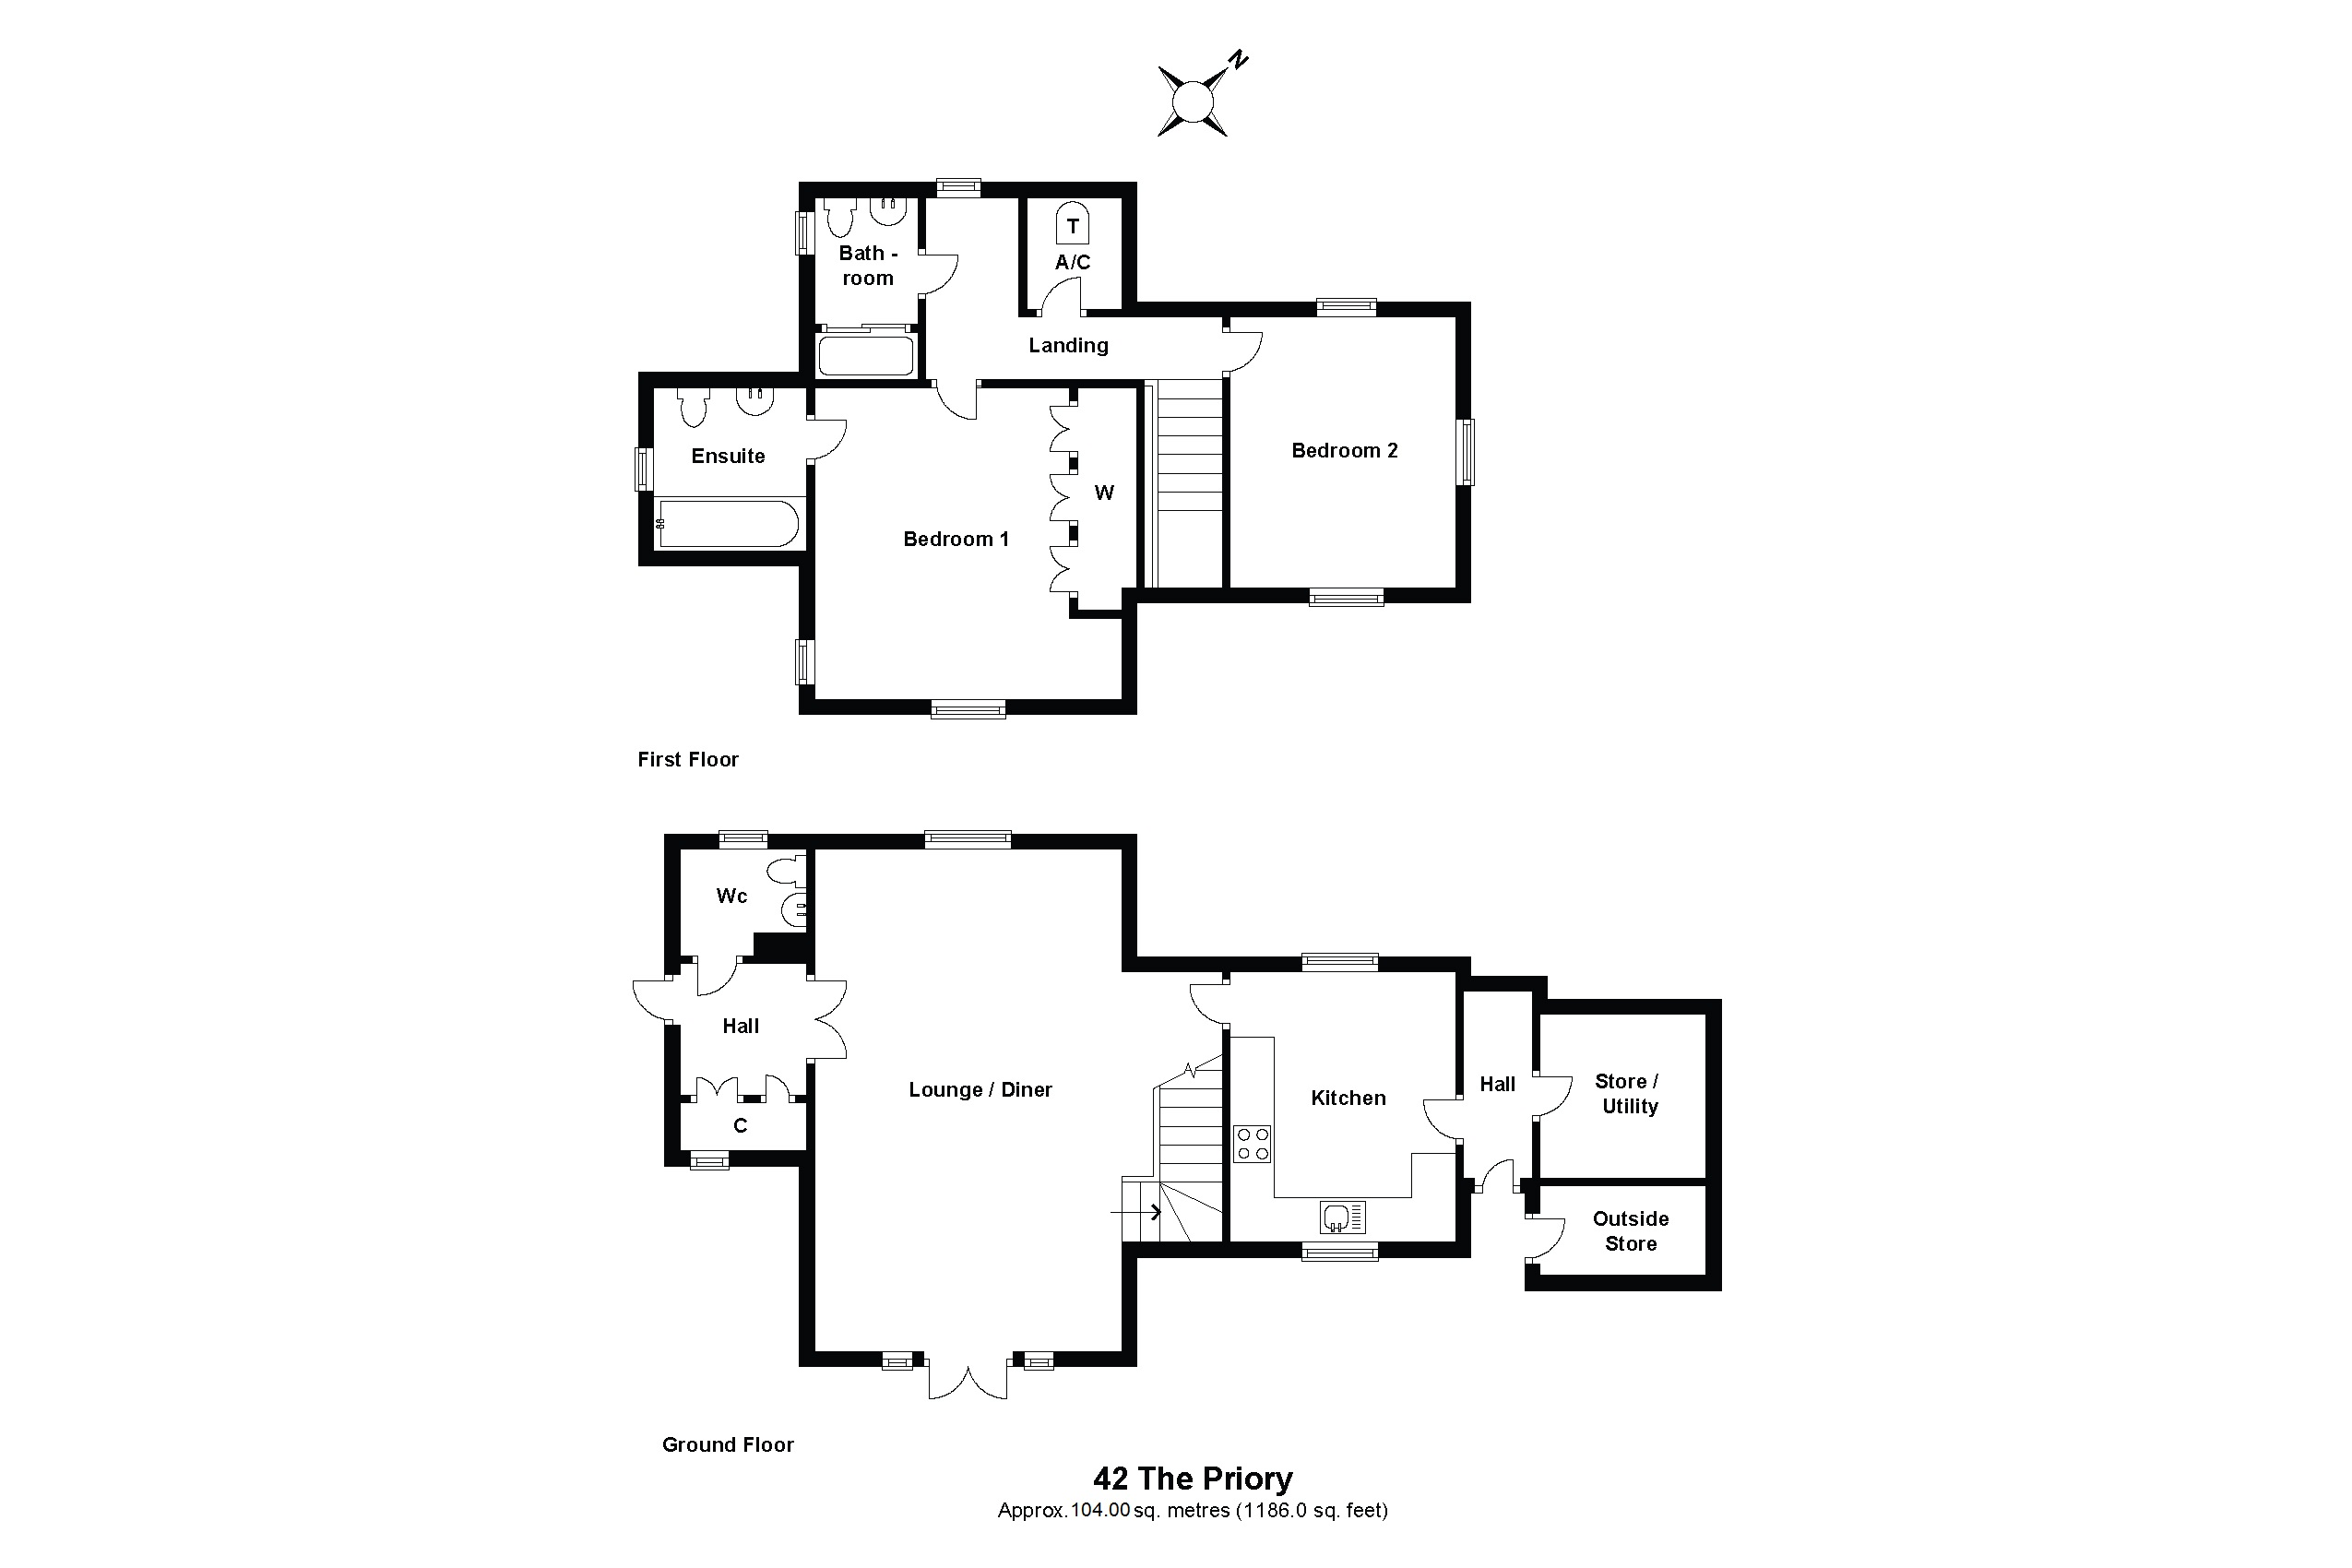 42 The Priory Floorplan